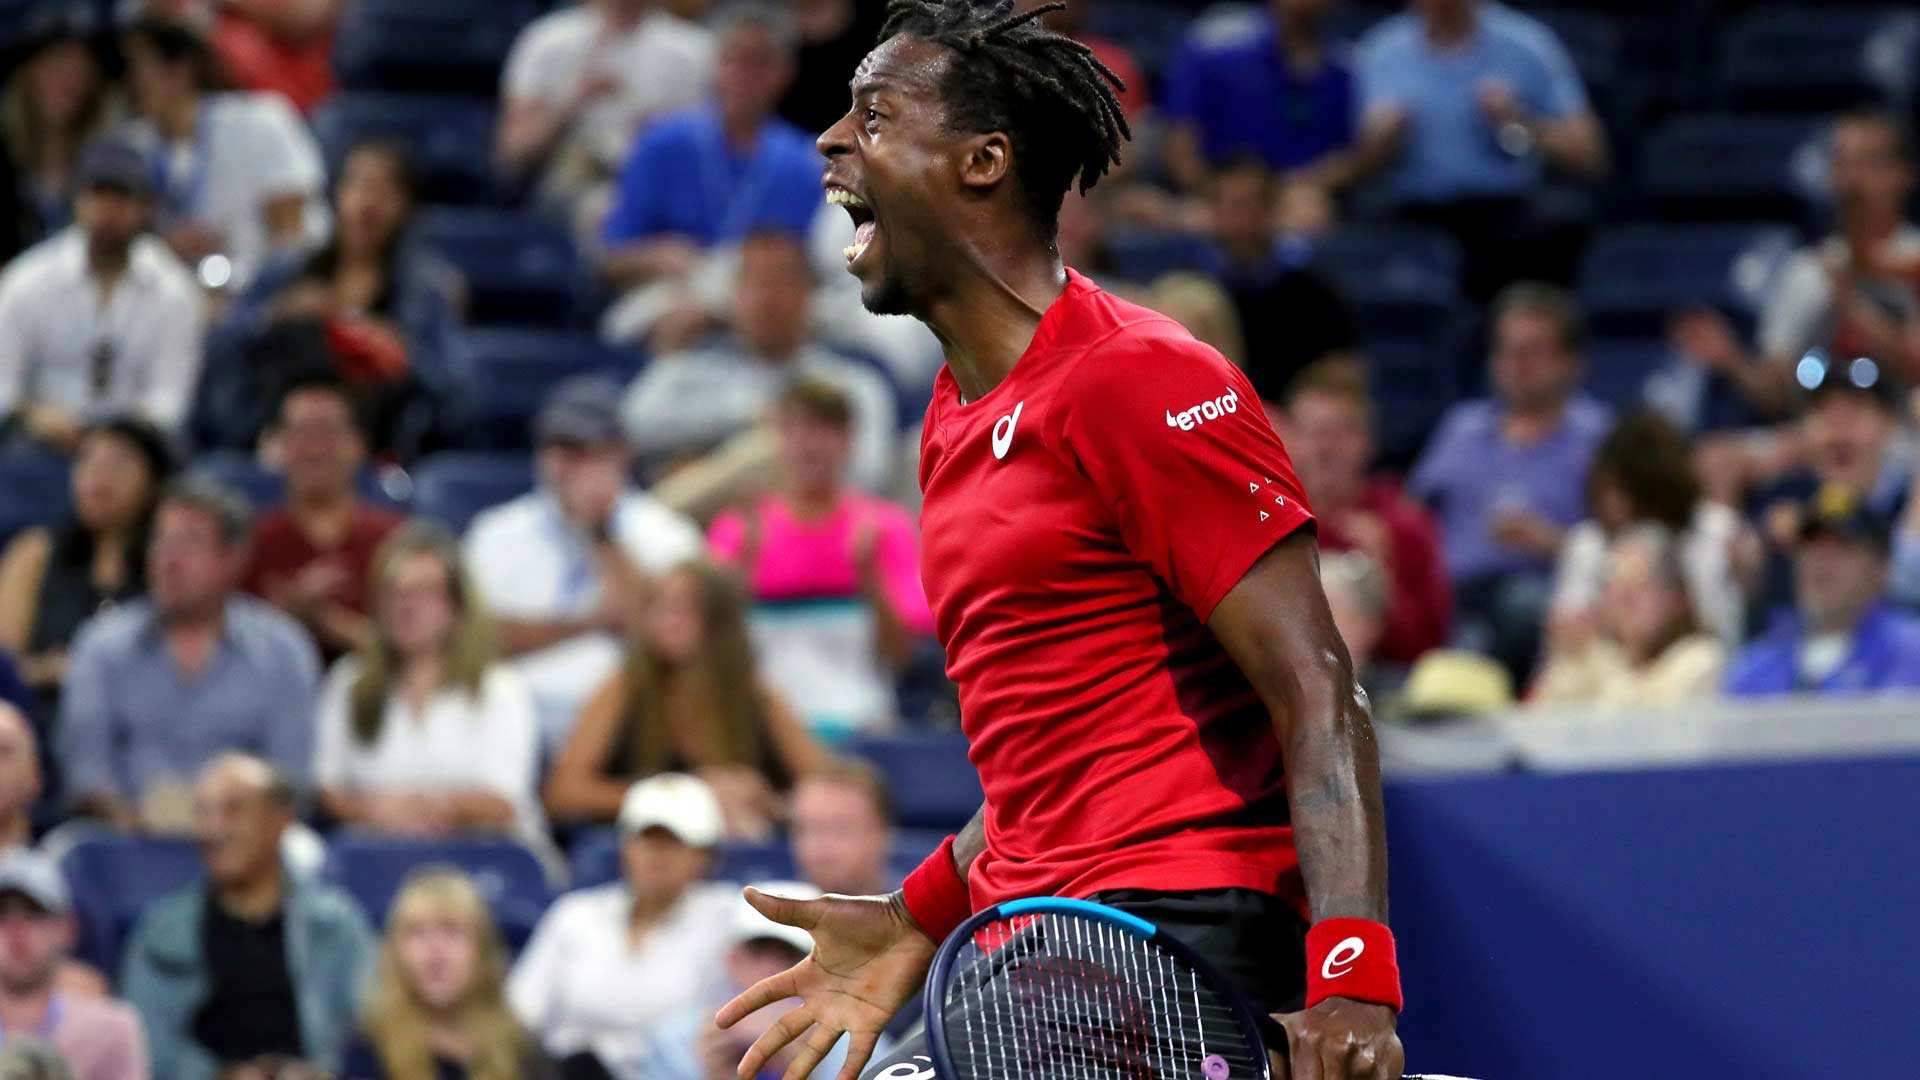 <a href='https://www.atptour.com/en/players/gael-monfils/mc65/overview'>Gael Monfils</a> reacts in his third-round match at the 2019 <a href='https://www.atptour.com/en/tournaments/us-open/560/overview'>US Open</a>